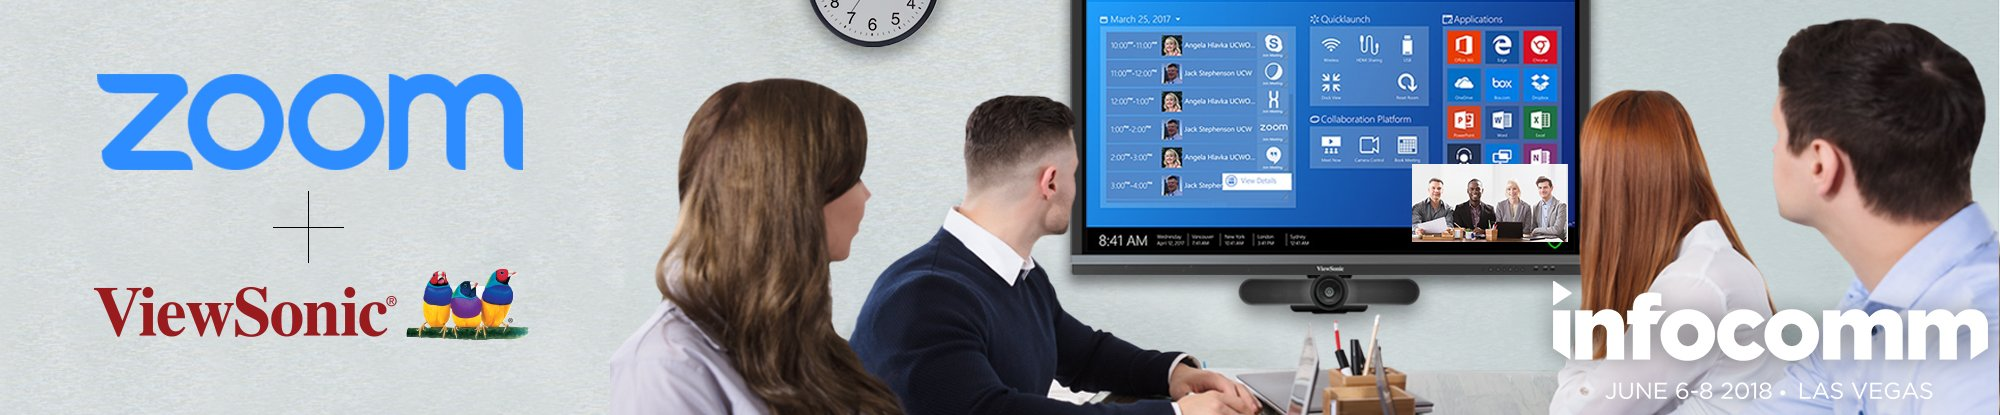 ViewSonic Integrates Zoom to Boost Workspace Collaboration -